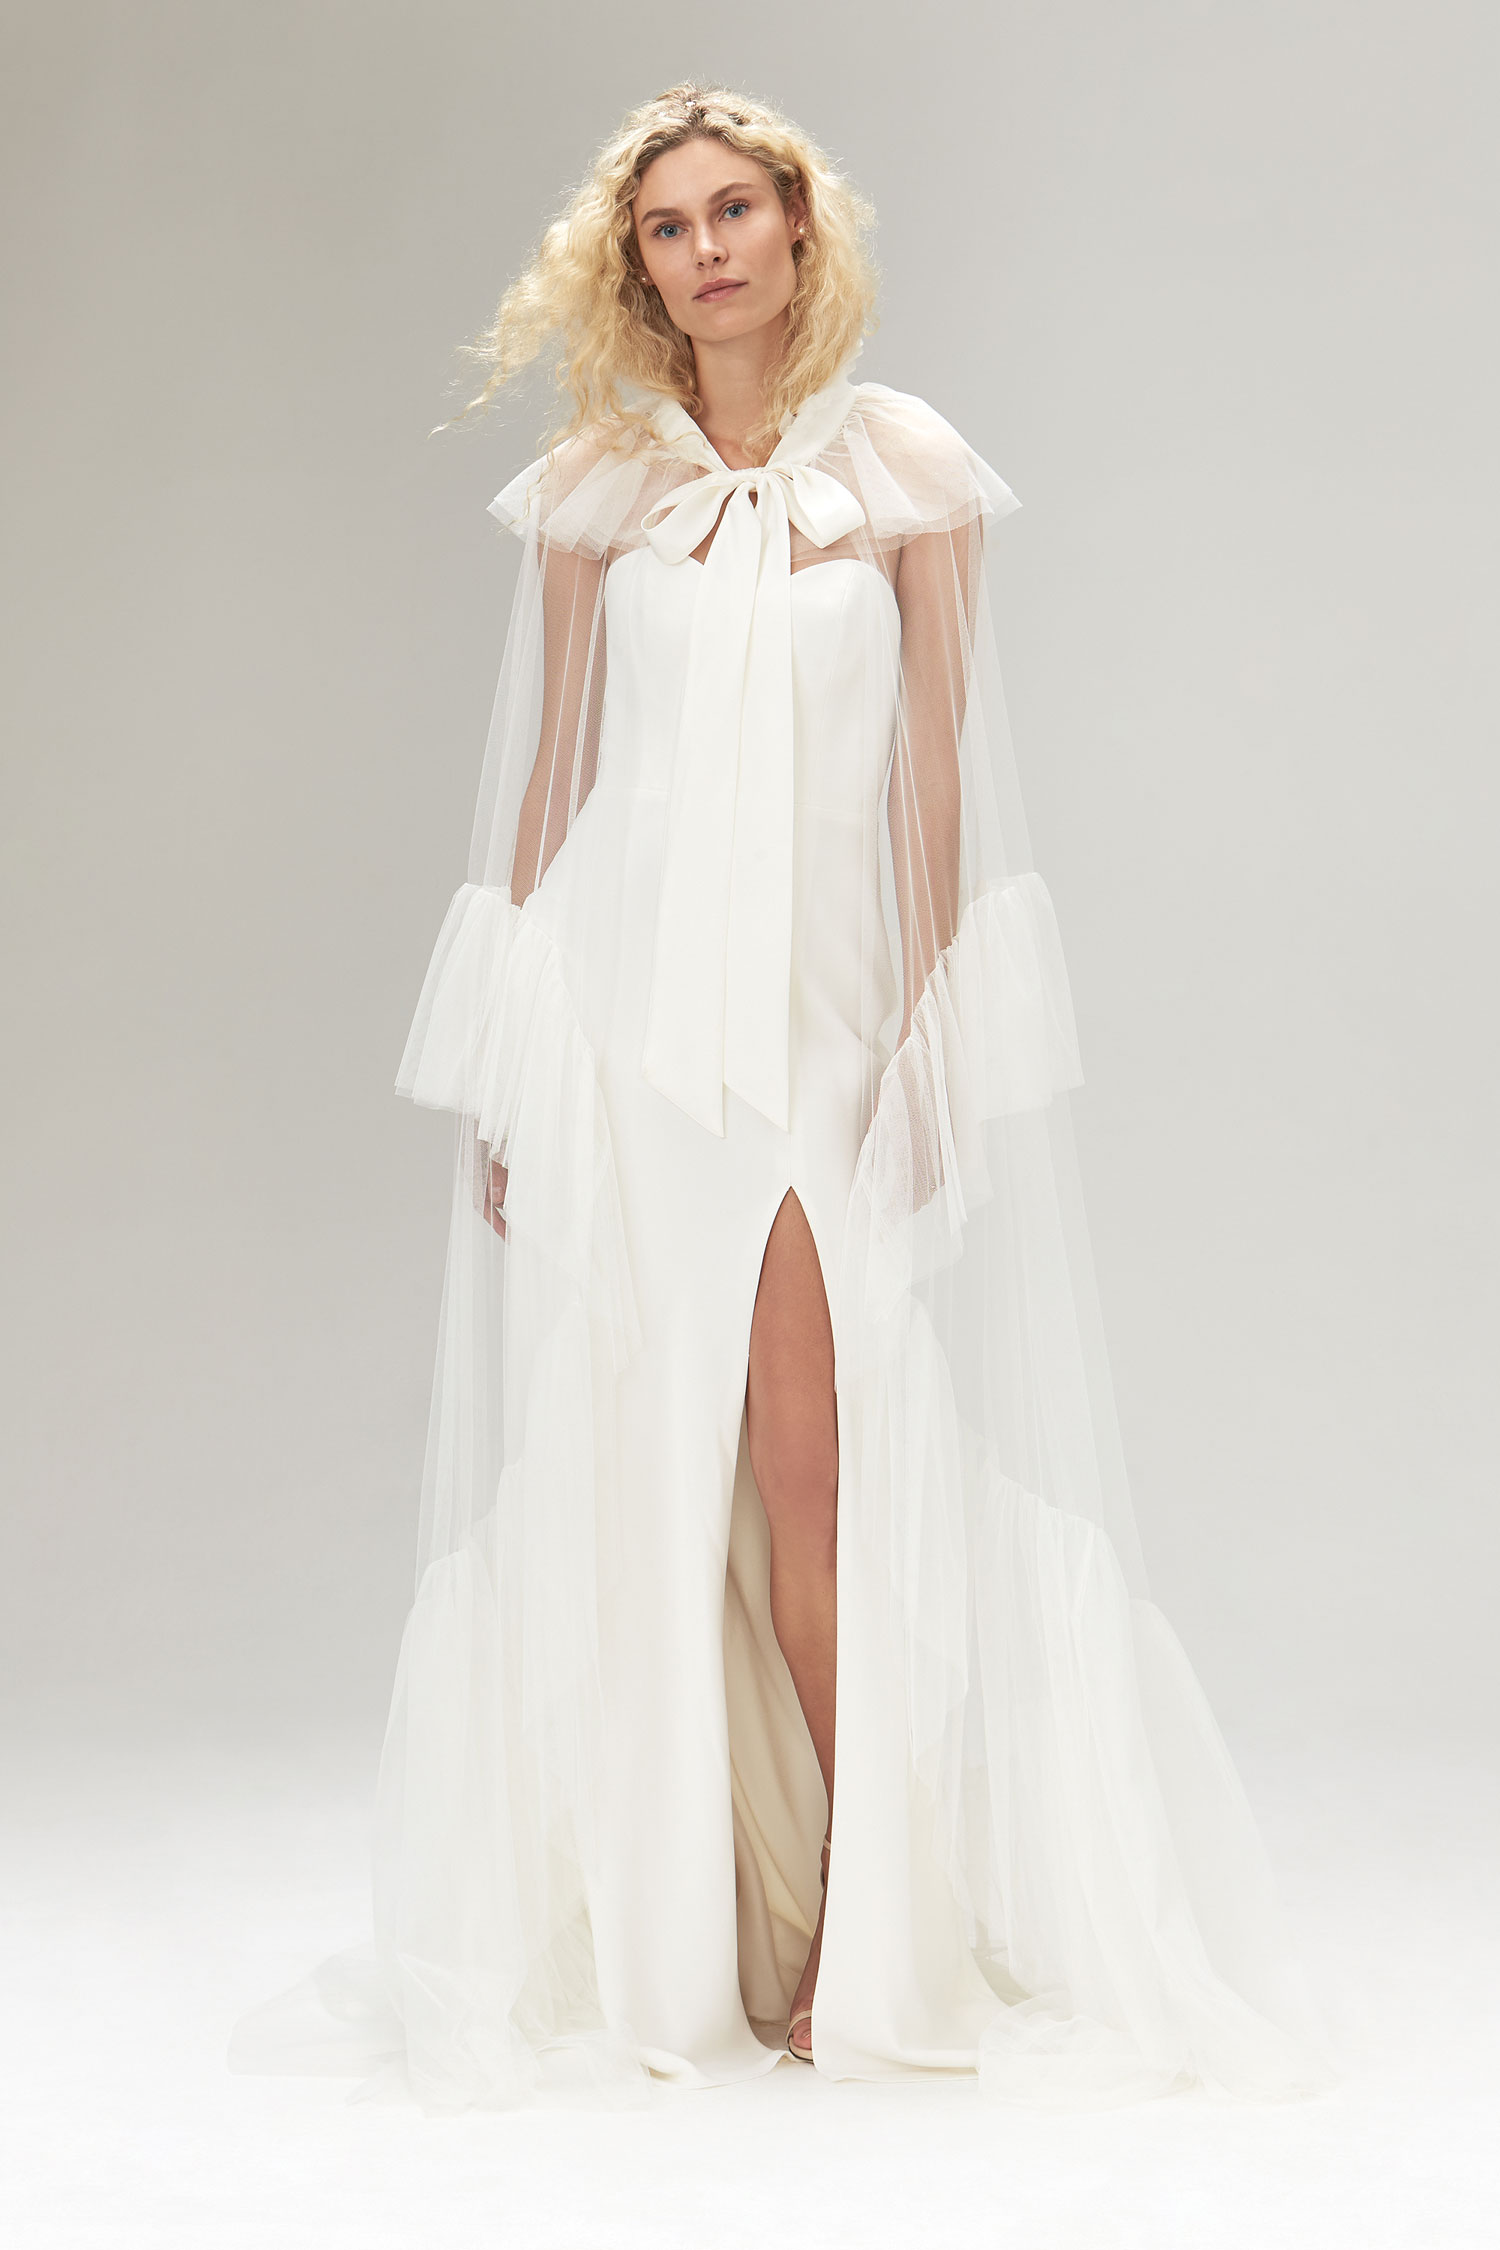 Halloween-inspired wedding dress with cape Savannah Miller